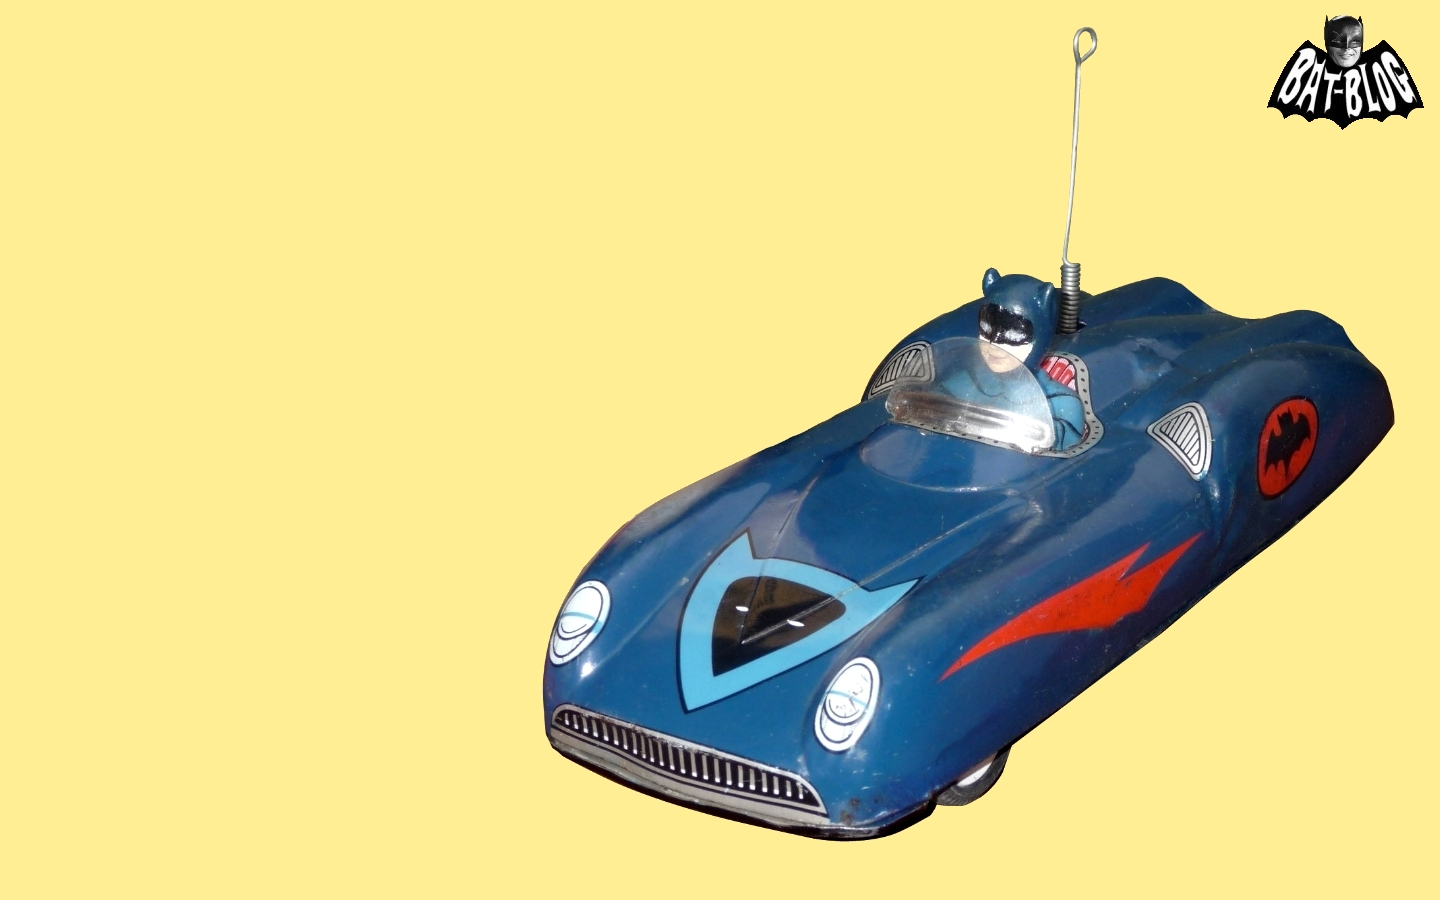 http://2.bp.blogspot.com/-tHU1BiZBNBk/Tdqk9TrkEMI/AAAAAAAAPOE/QEw3aLnJ2i0/s1600/batmobile-tin-toy-japan-batman-wallpaper-1.jpg